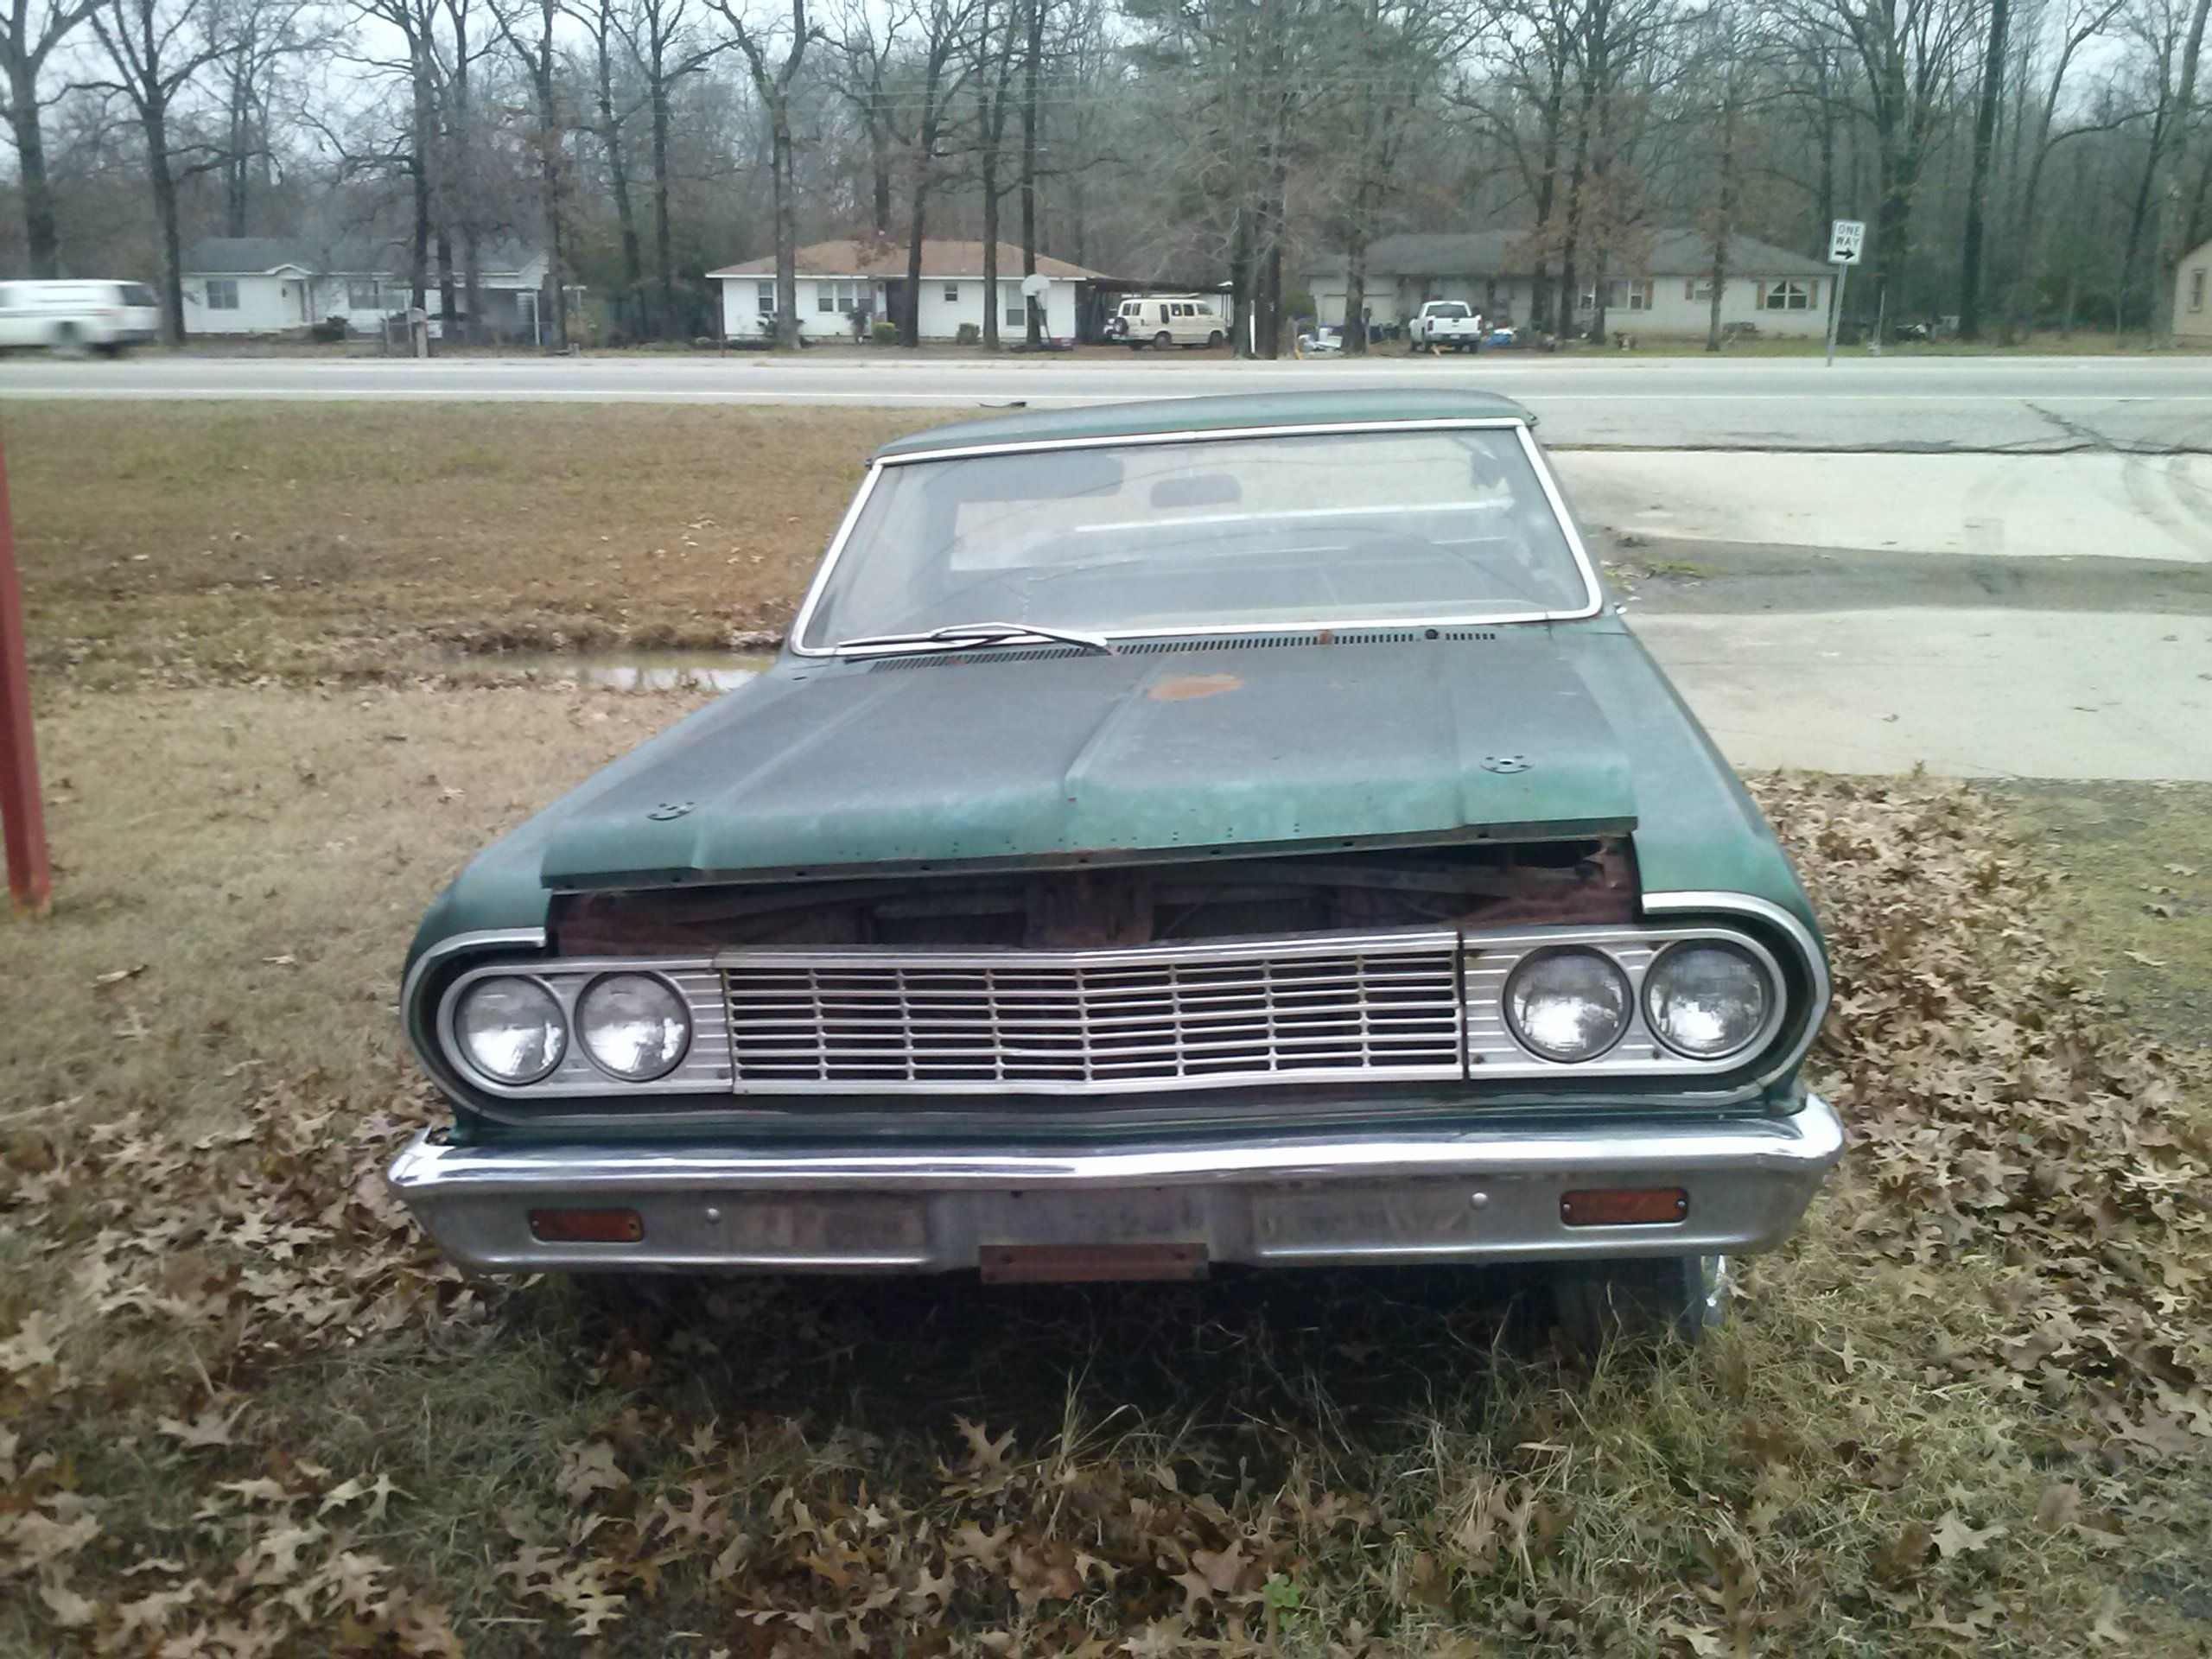 hight resolution of either a 64 or 65 chevy el camino six cylinder engine rusted out floorboards van buren arkansas tripper s travels